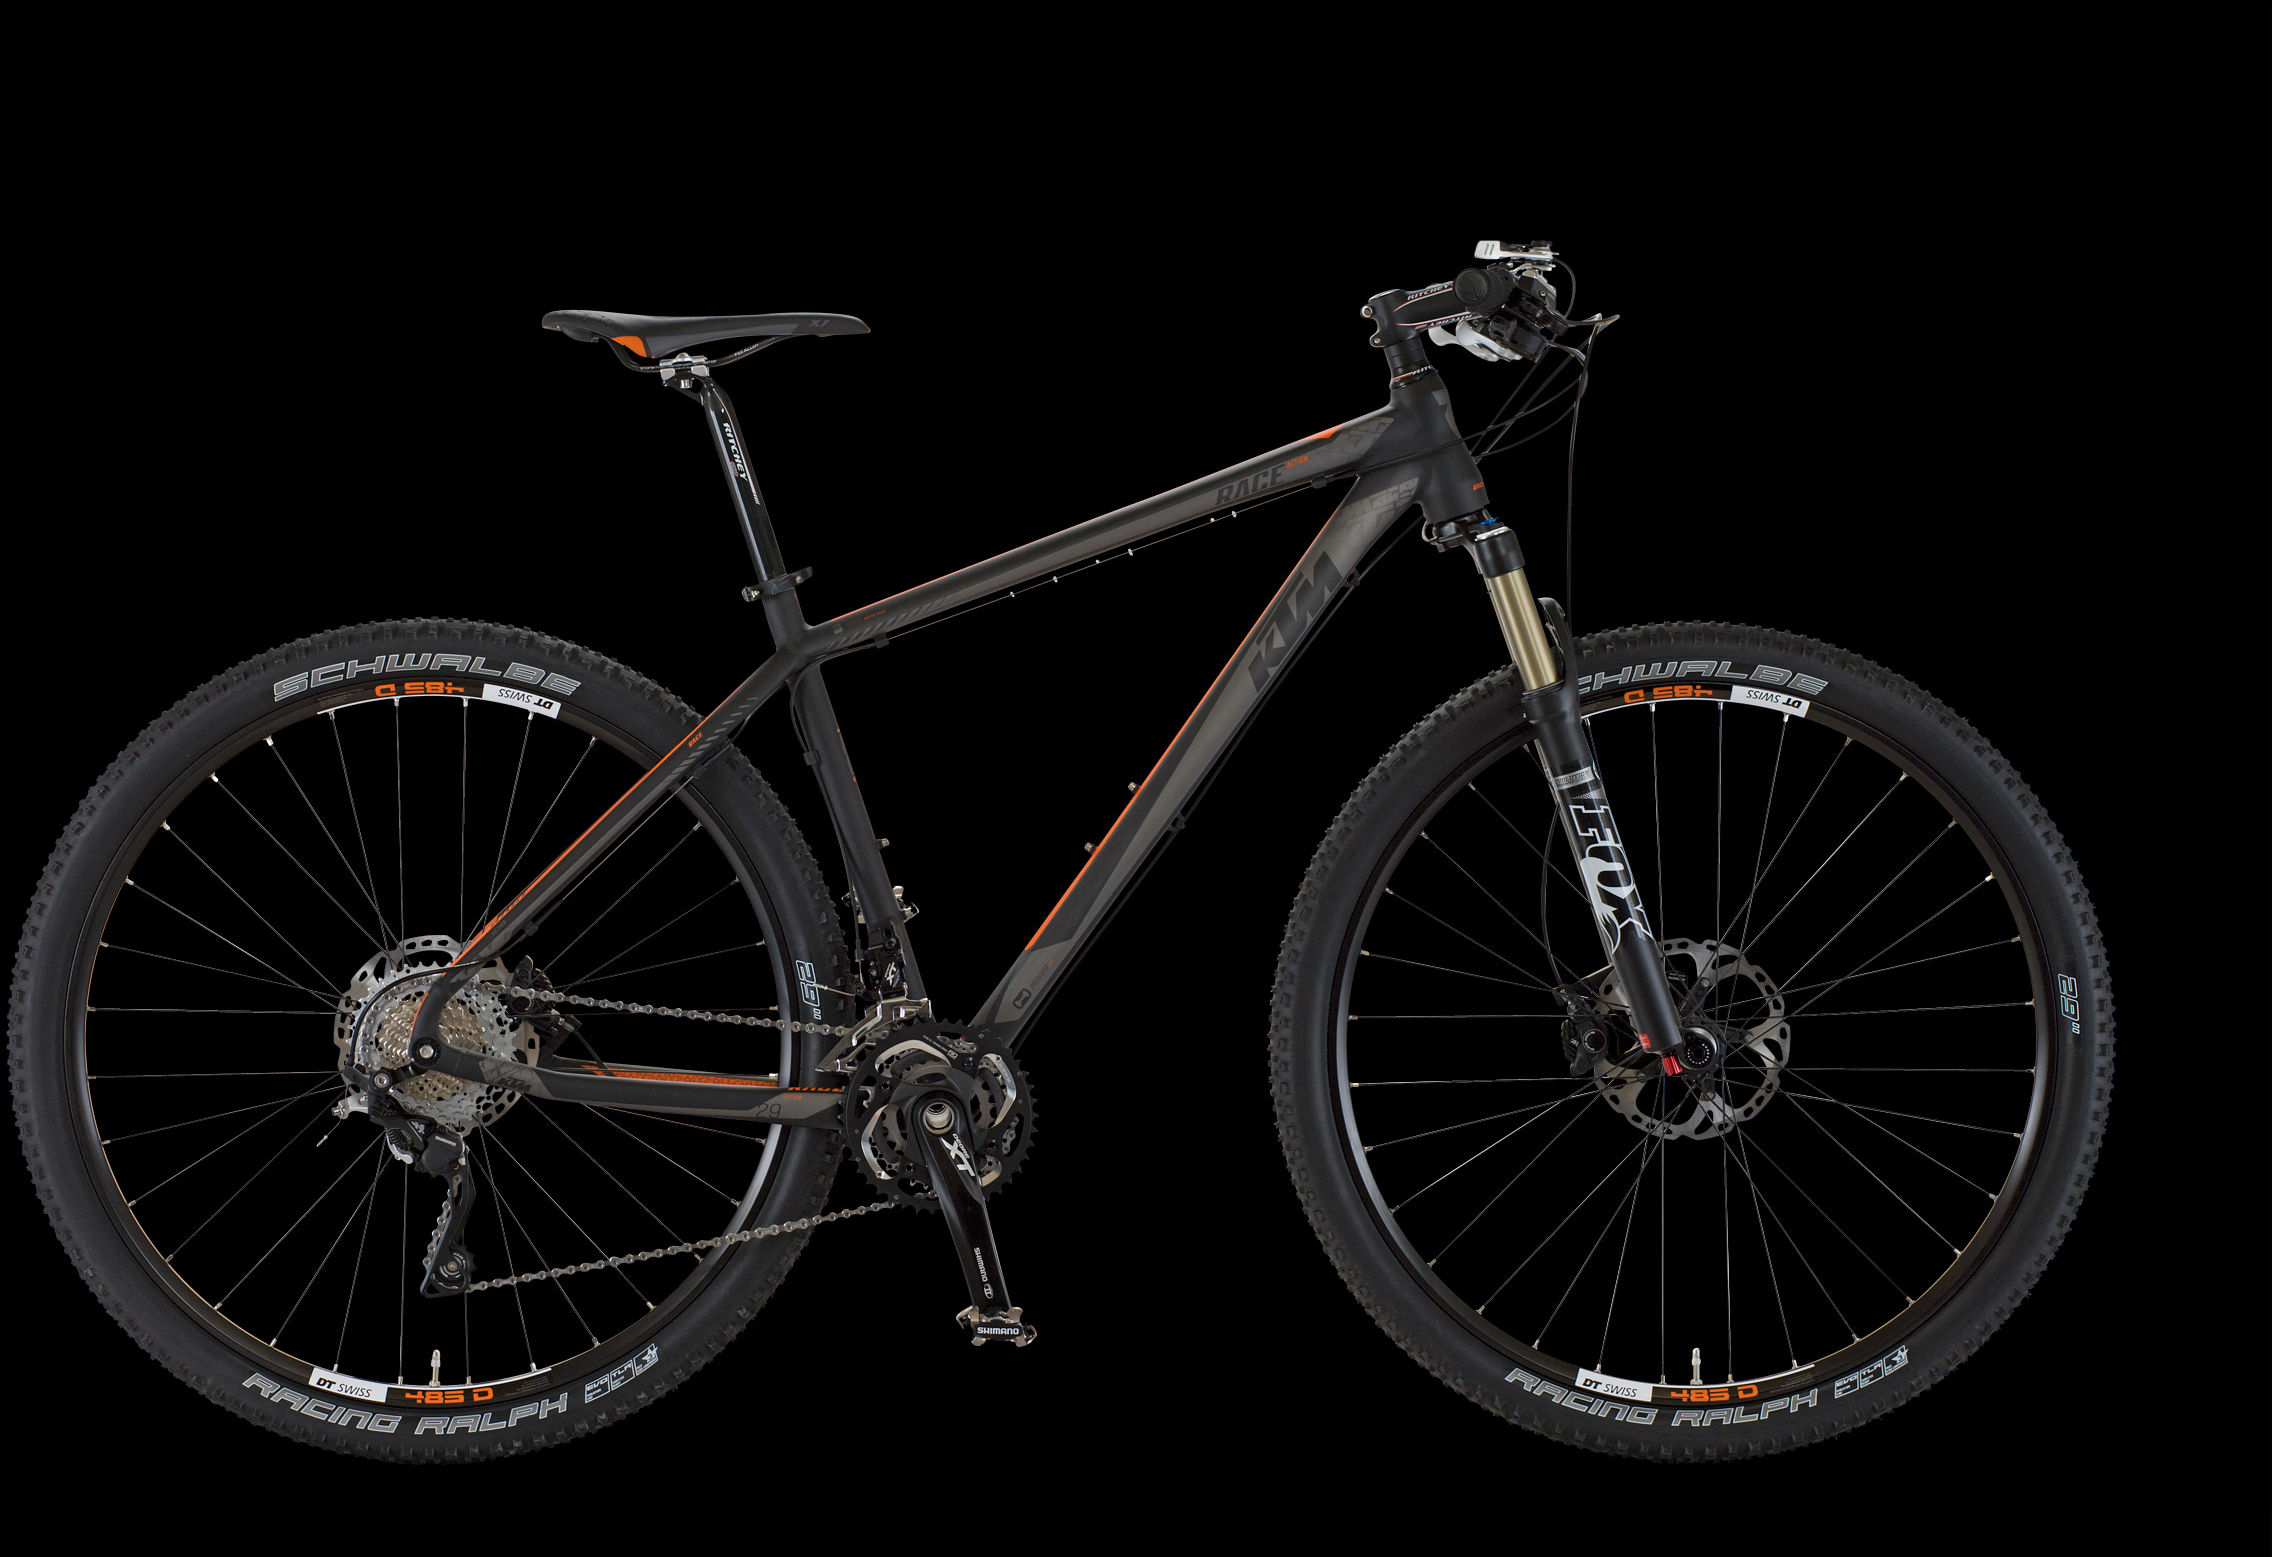 Mountainbike 29 Inch Ktm Race Action 29 2013 Review - The Bike List